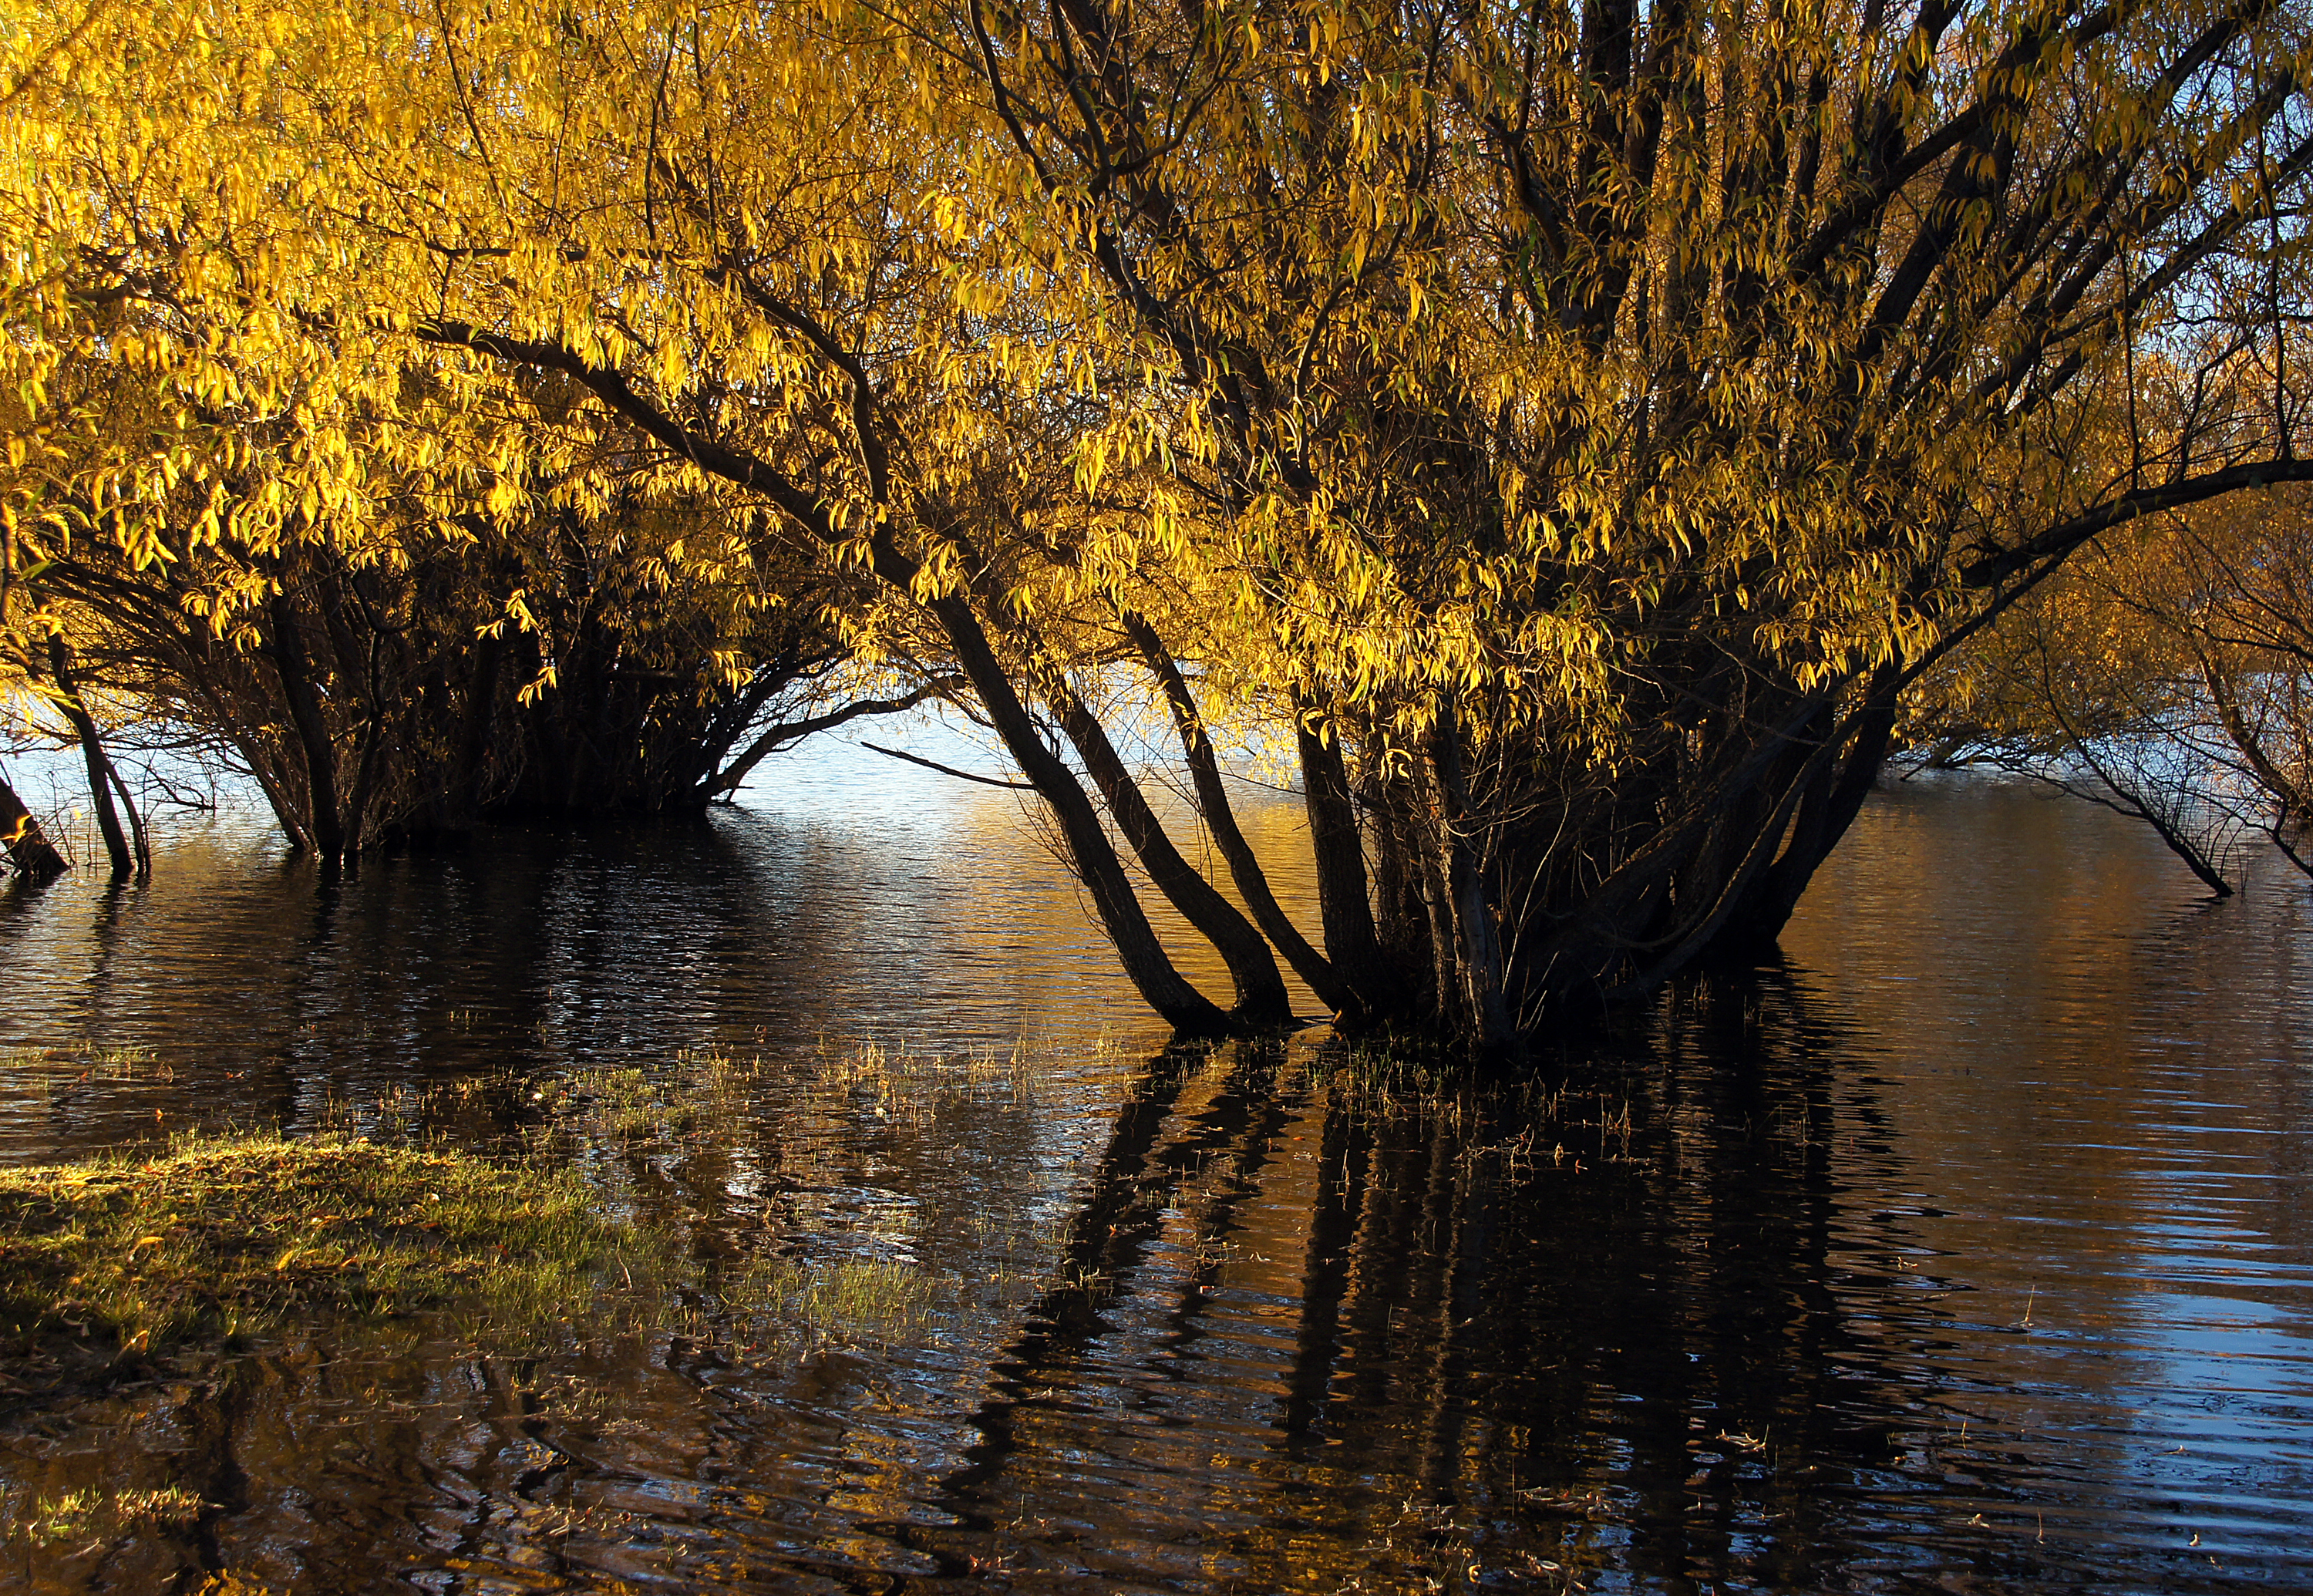 Autumn at lake tekapo nz (25) photo